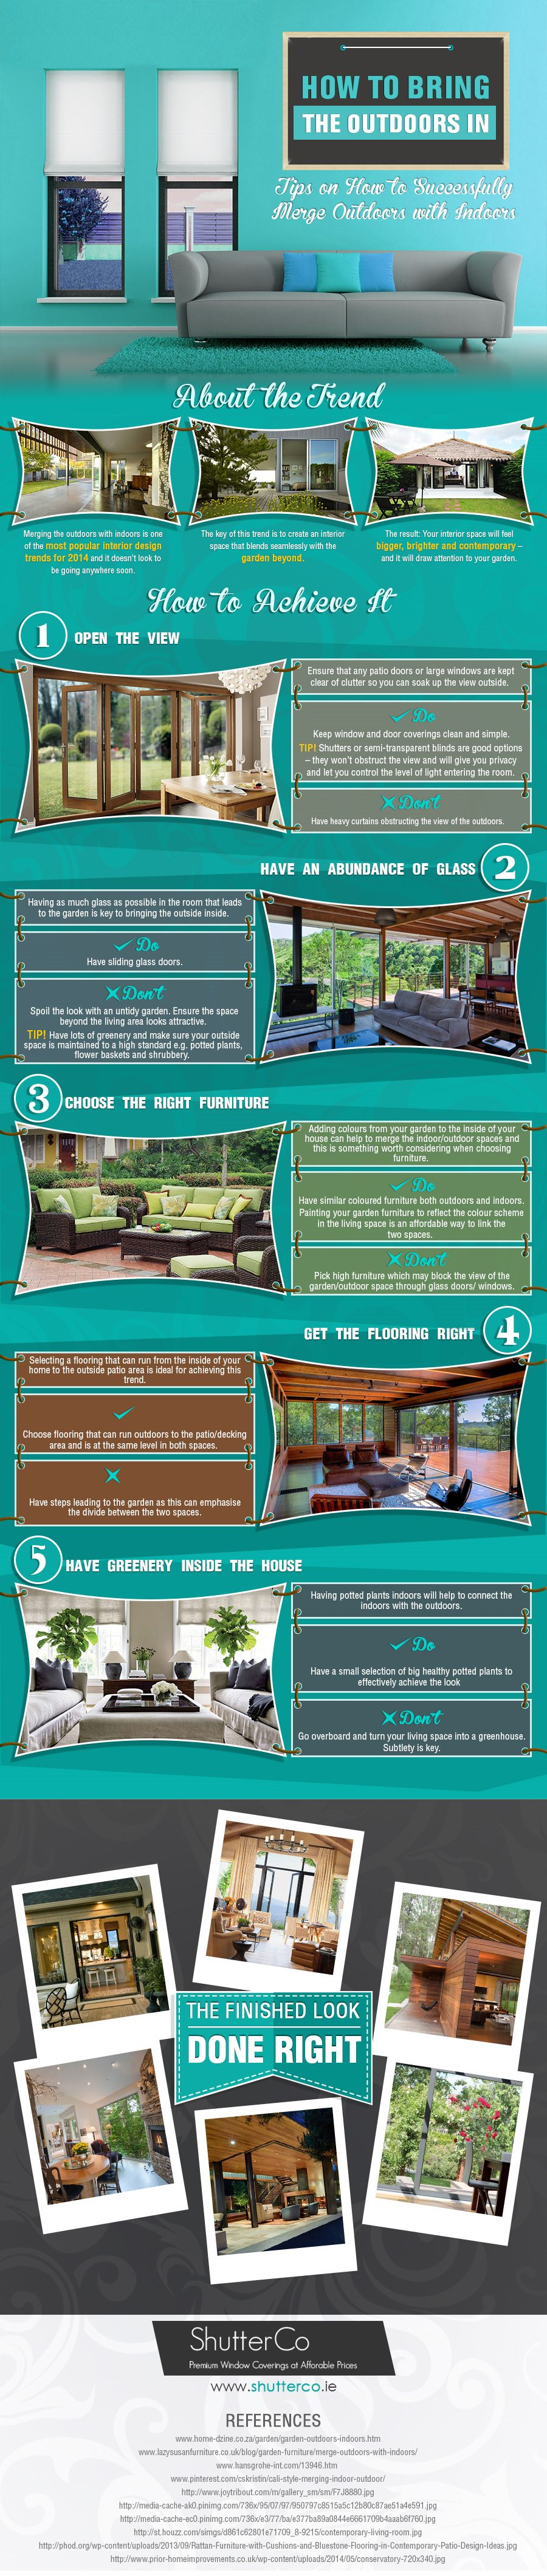 how to bring the outdoors in infographic